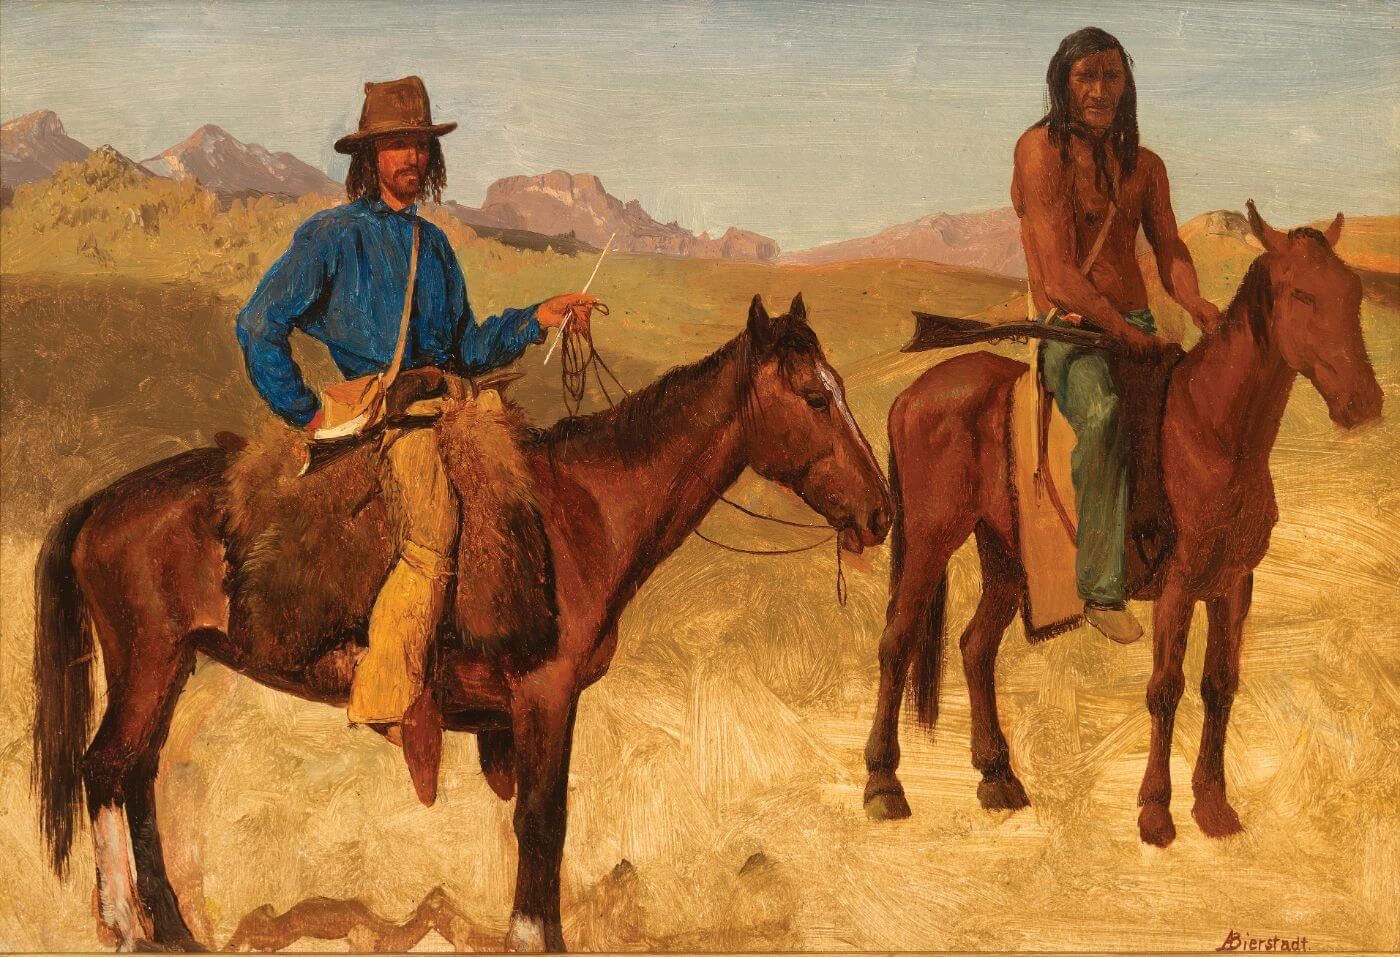 Trapper and Indian Guide - Albert Bierstadt - Western American Indian Art Painting